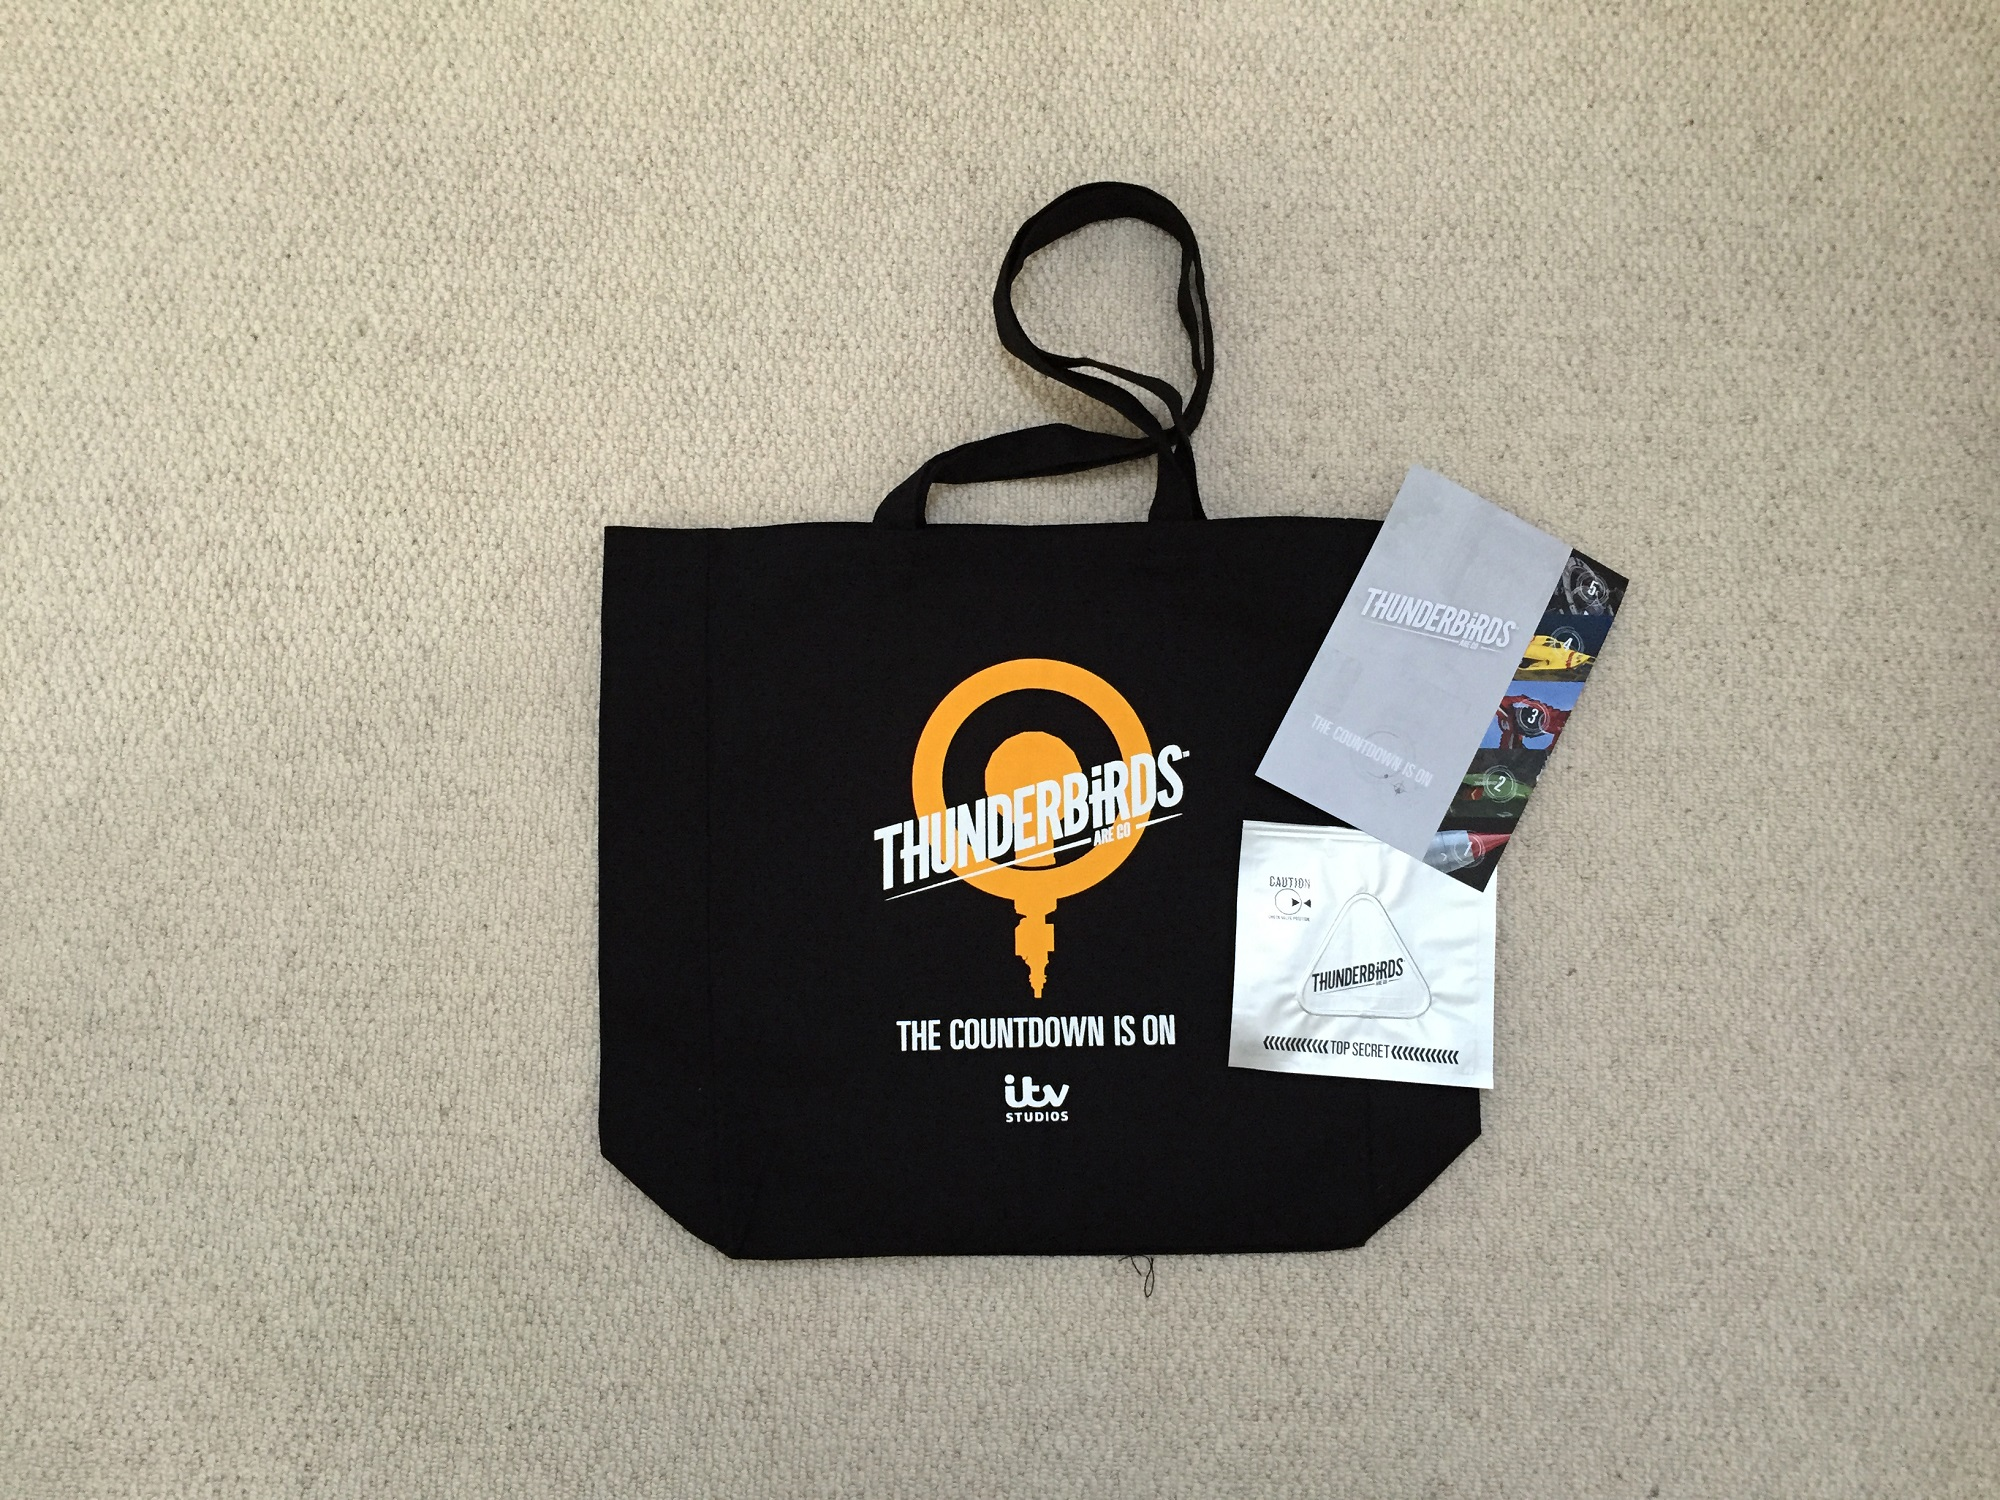 Thuderbird 5-bag competition prize